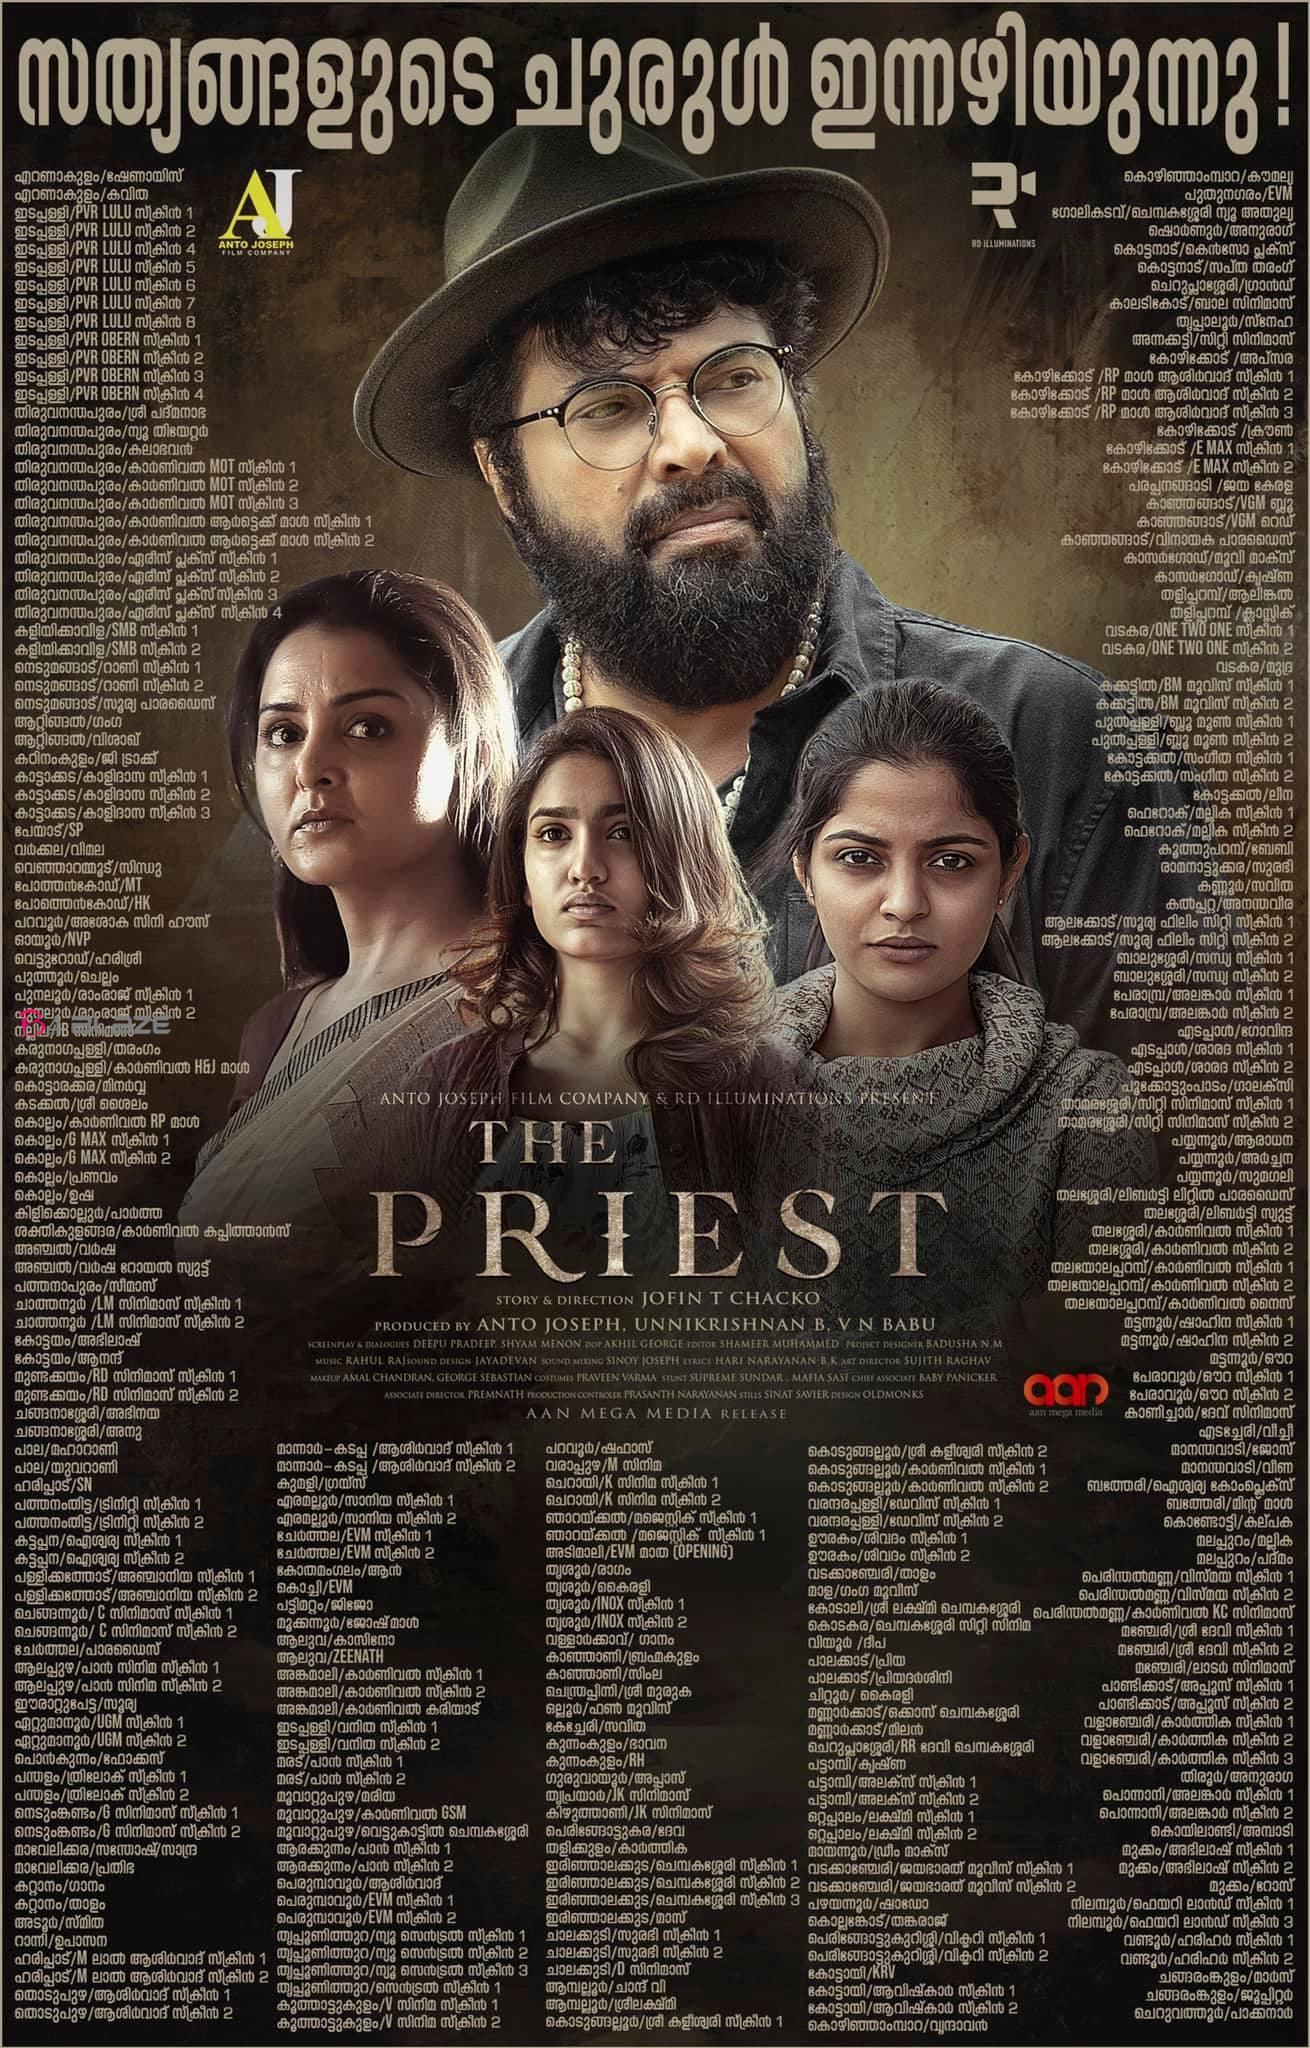 The Priest Theatre List